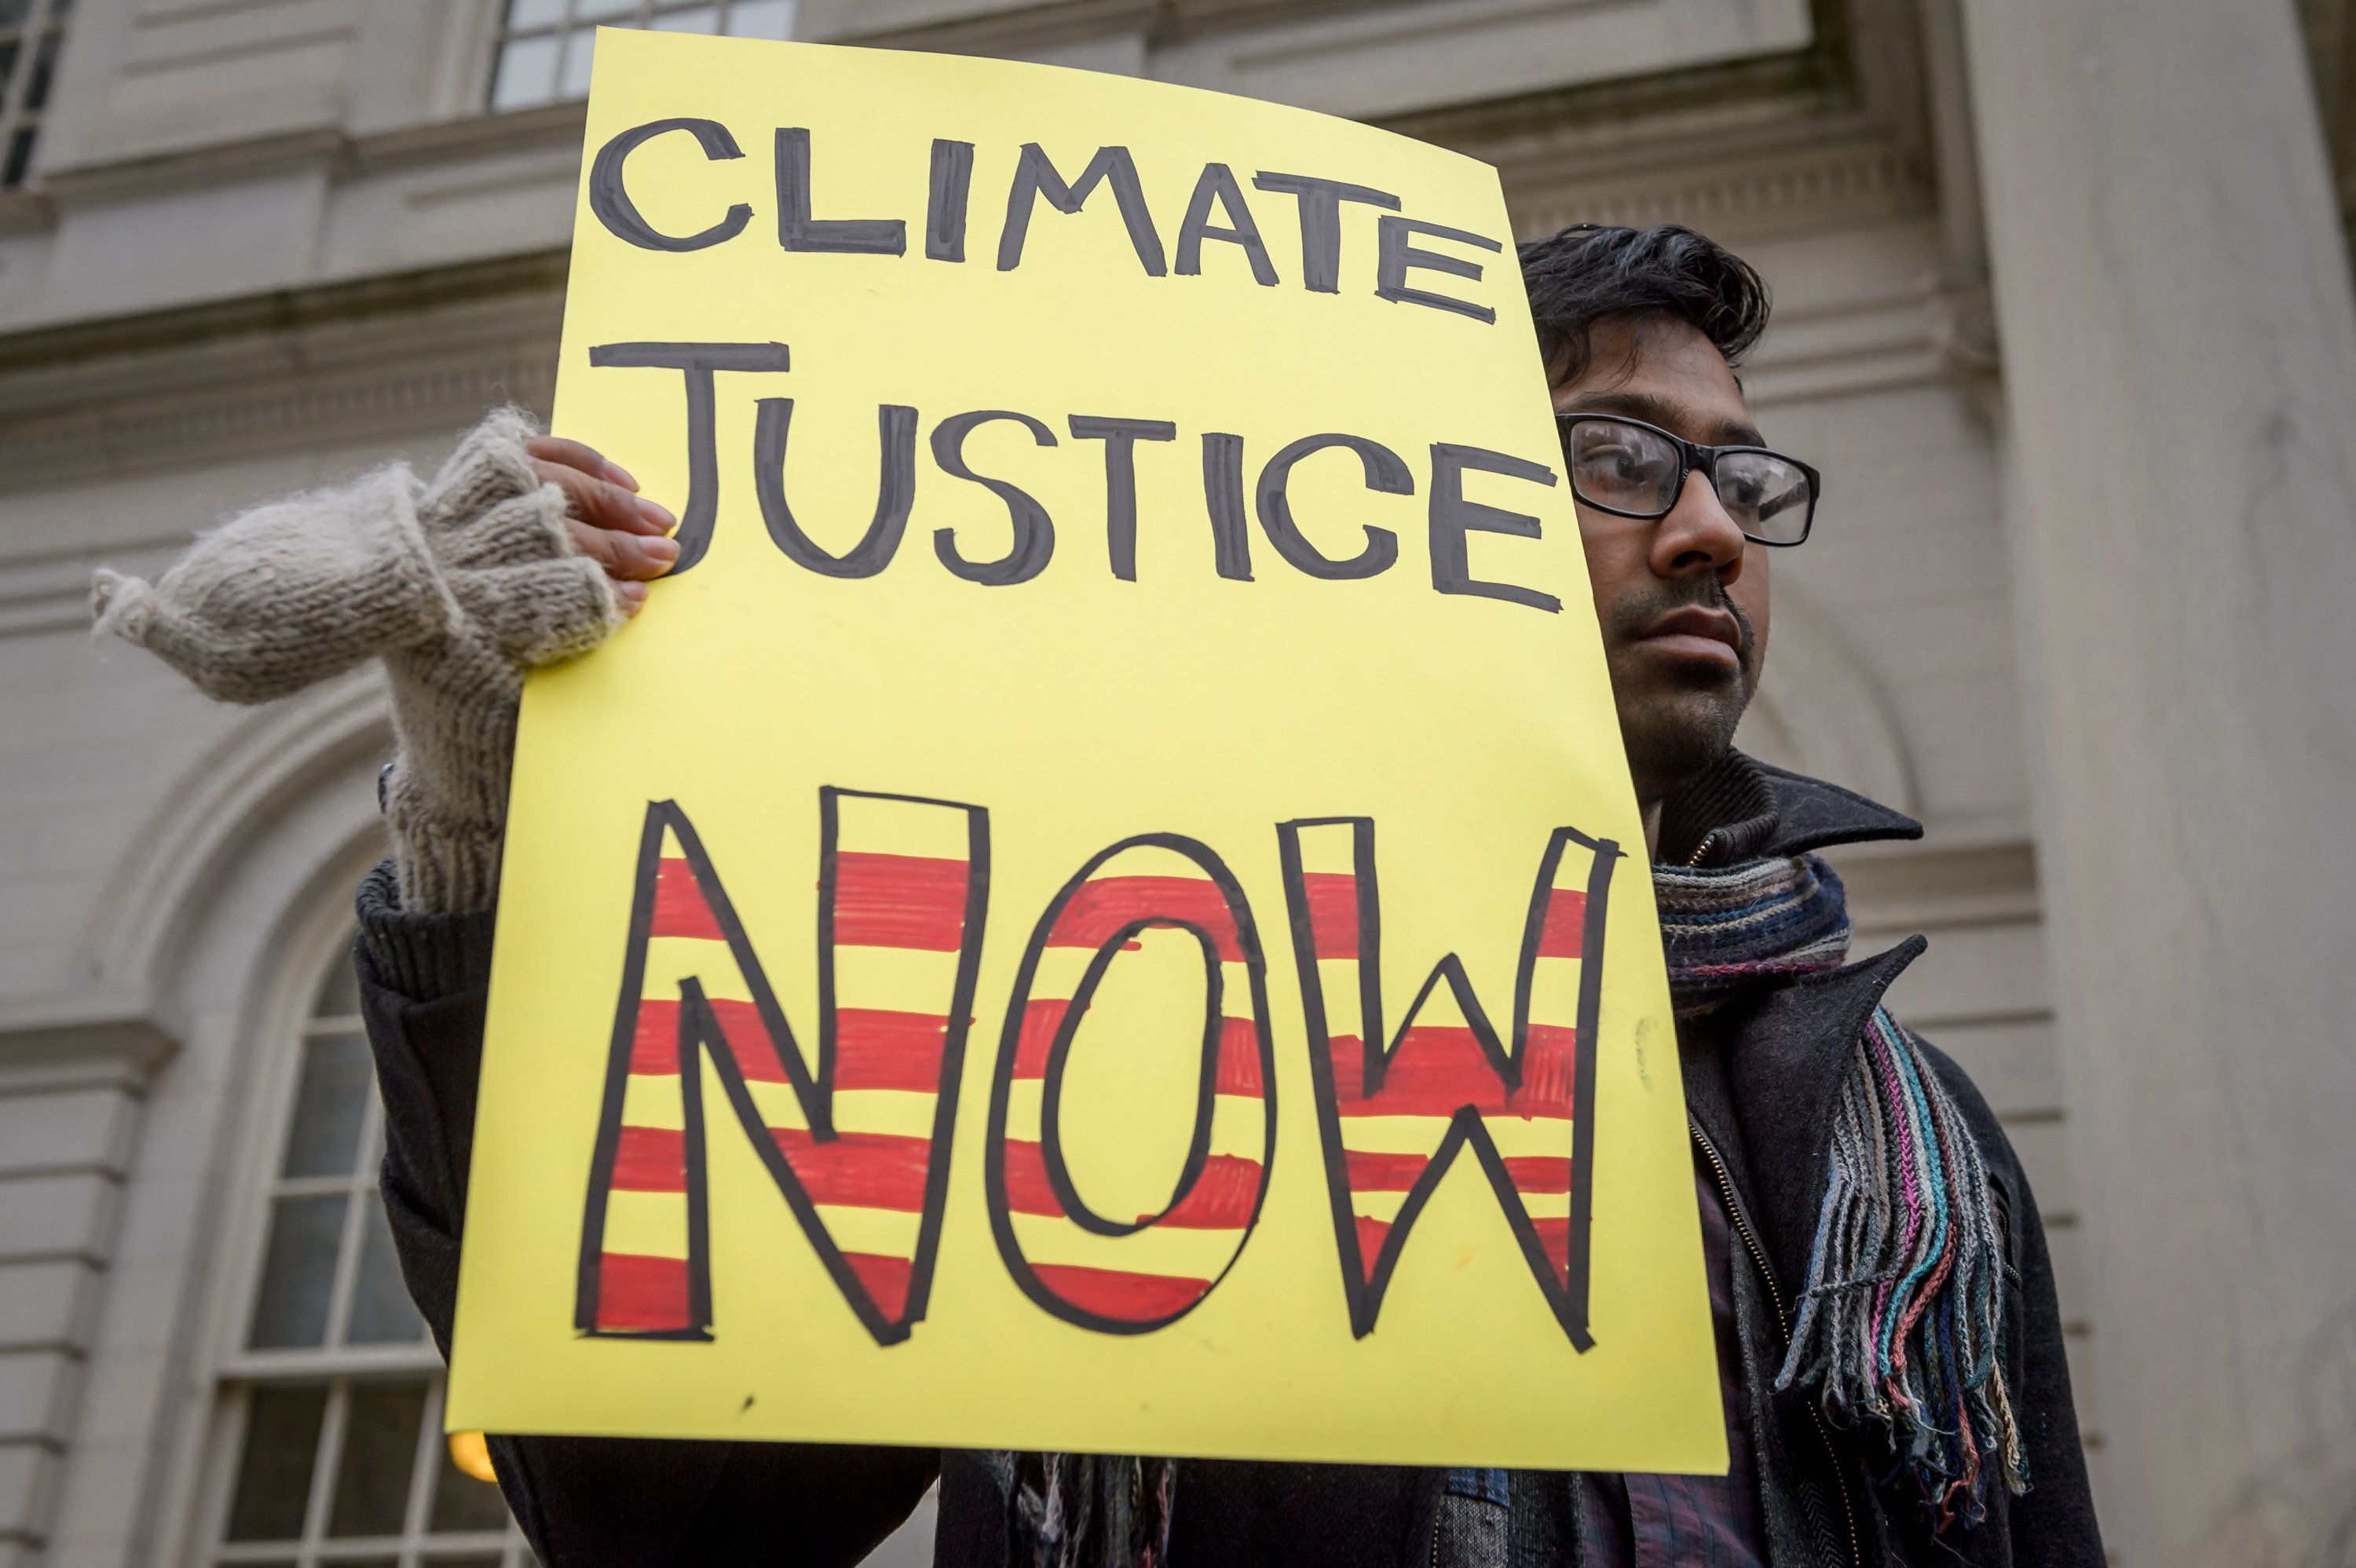 7 Things You Need To Know About Climate Change Ahead Of Next Week's UN Talks